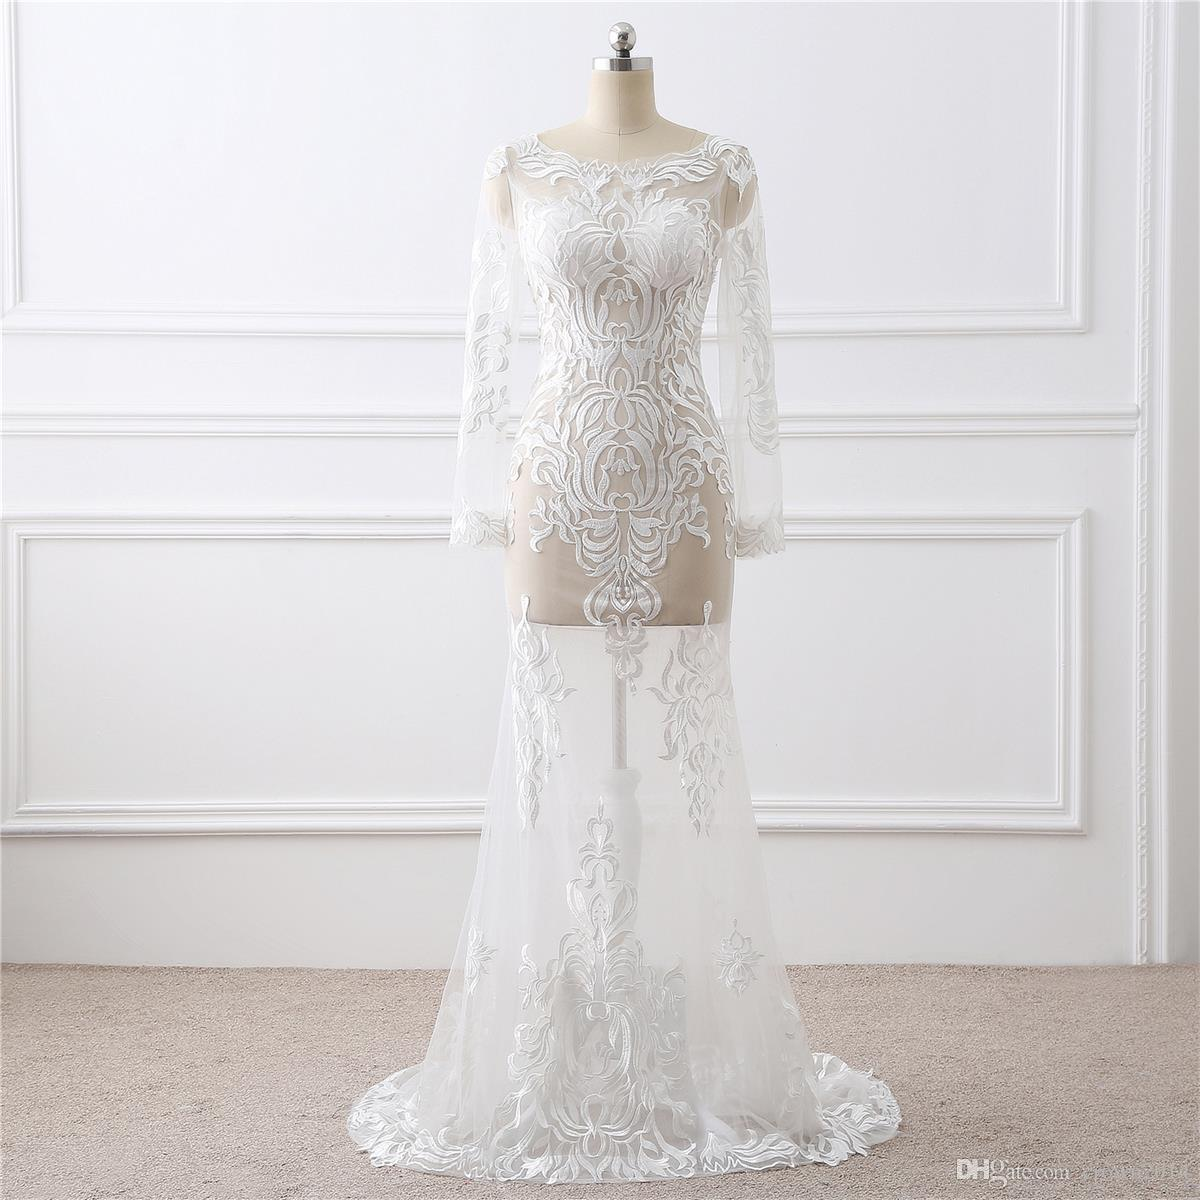 Lace Embroidered Mermaid Wedding Gown With Illusion Long Sleeves Sheer Neck See Through Tulle Sweep Train Real Photo Bridal Wedding Dresses